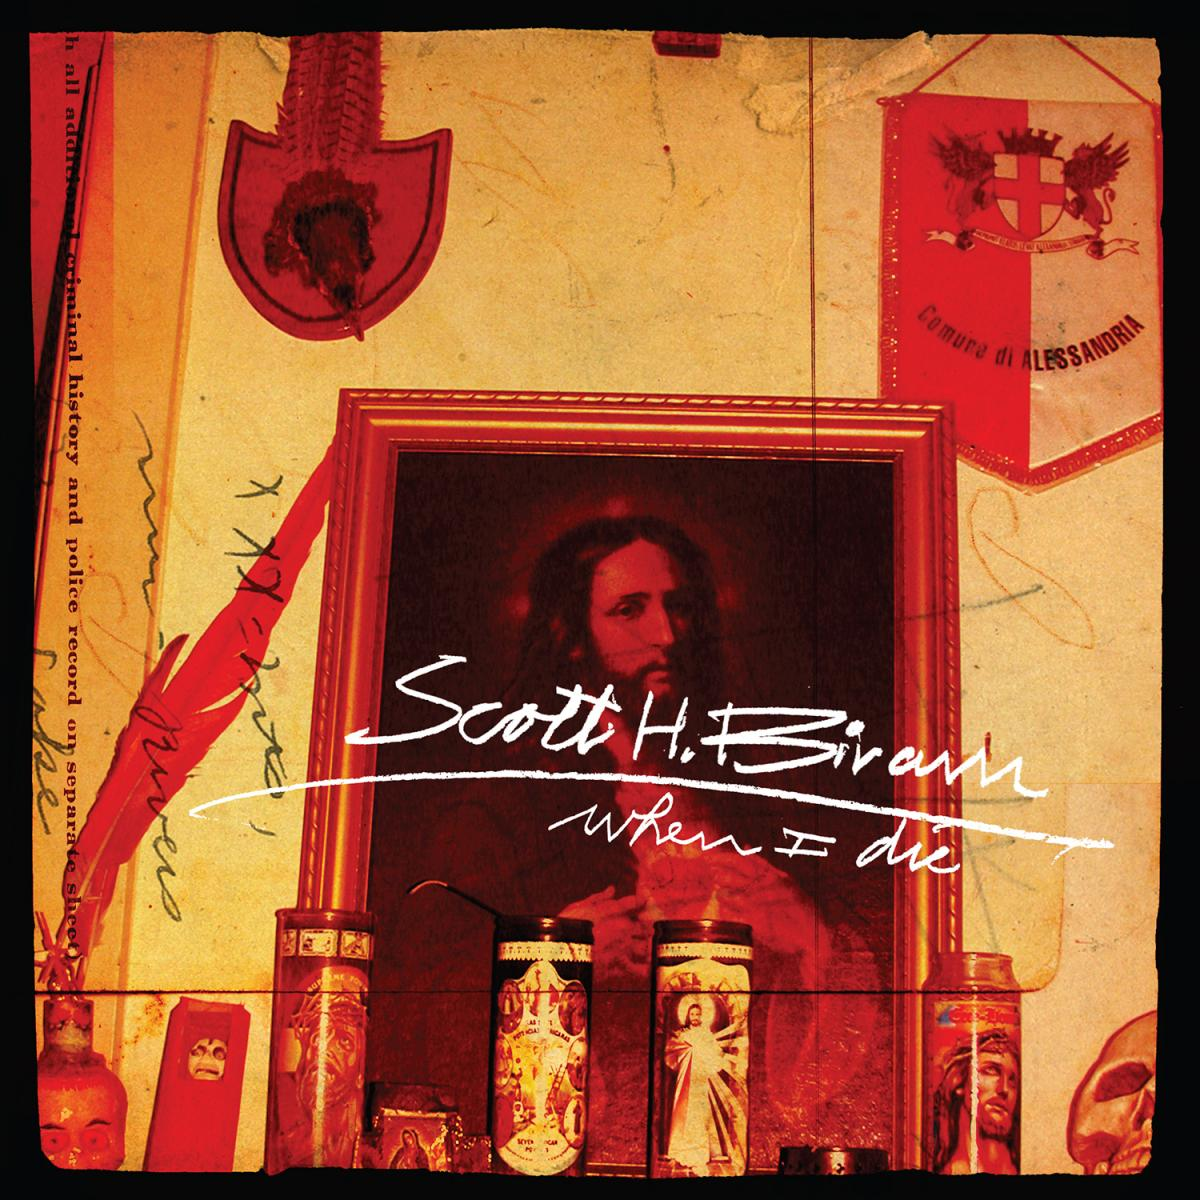 Scott H Biram When I Die 7 inch single record store day black friday